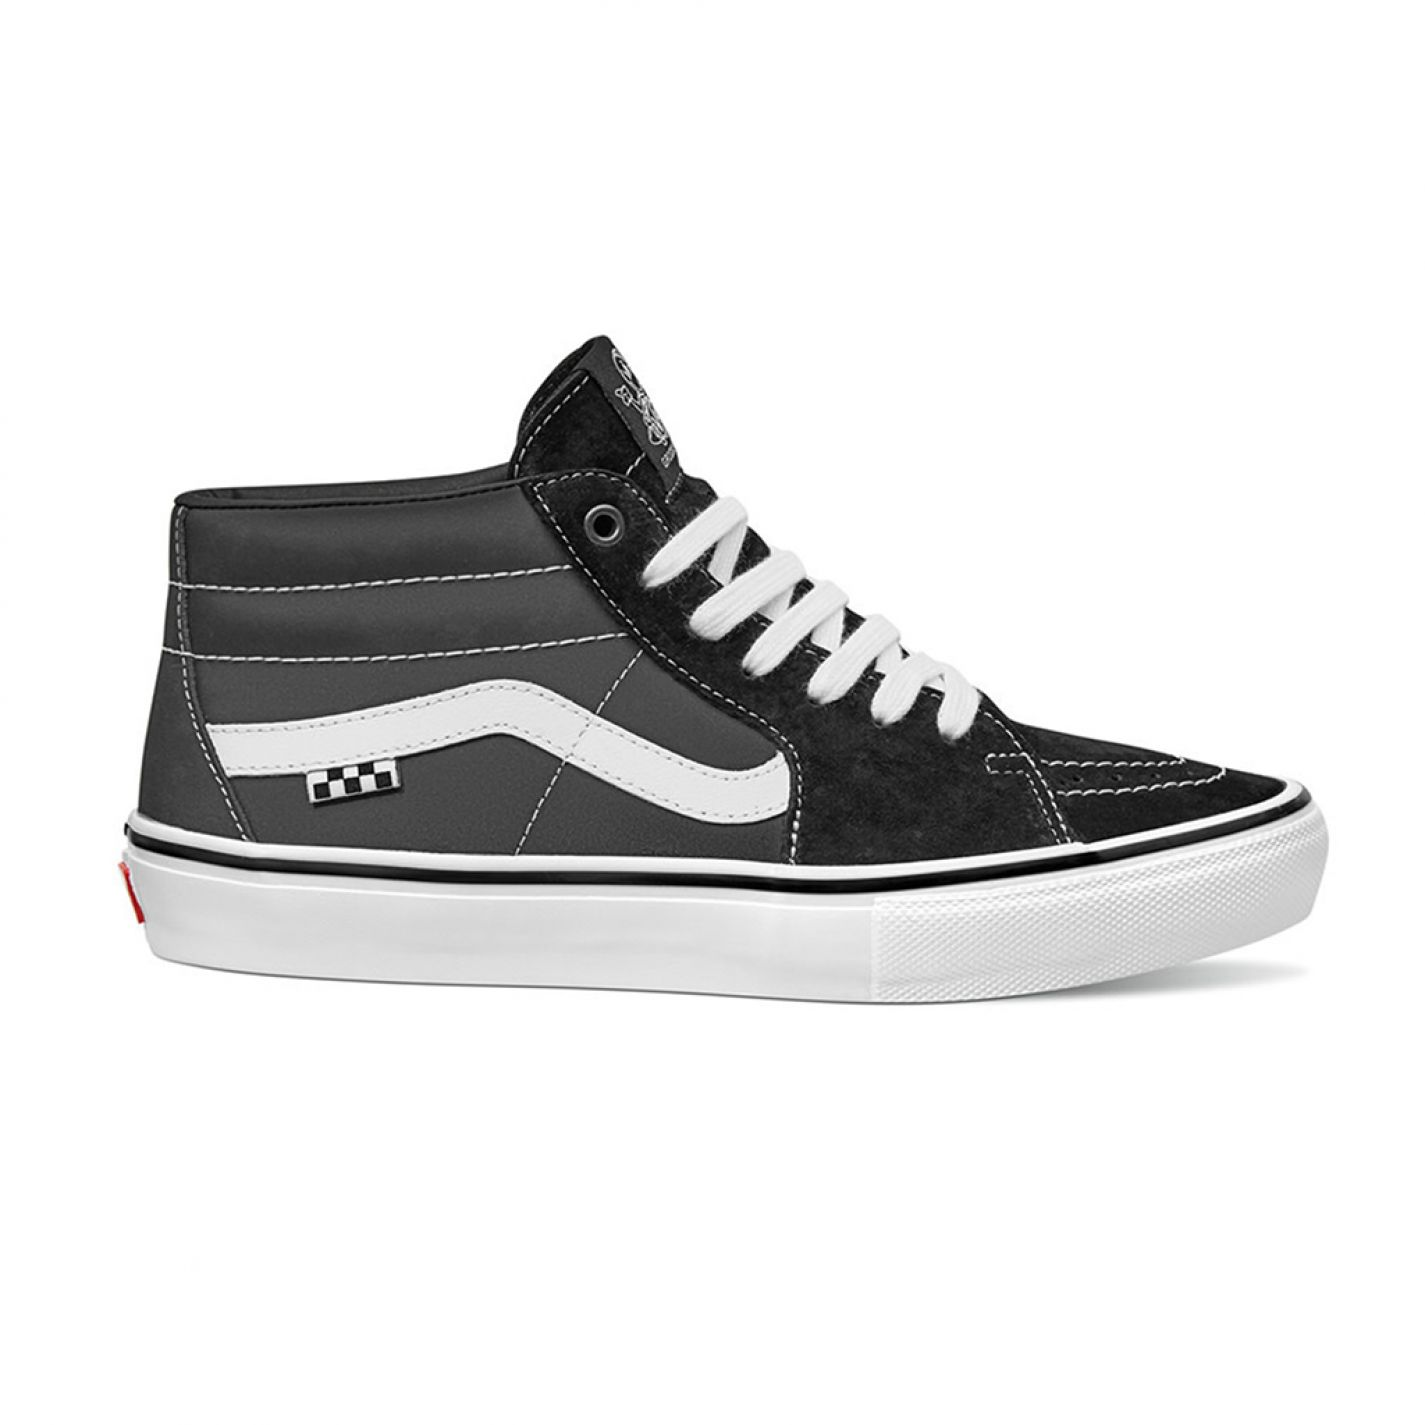 Vans Grosso Mid Black/White/Emo Leather